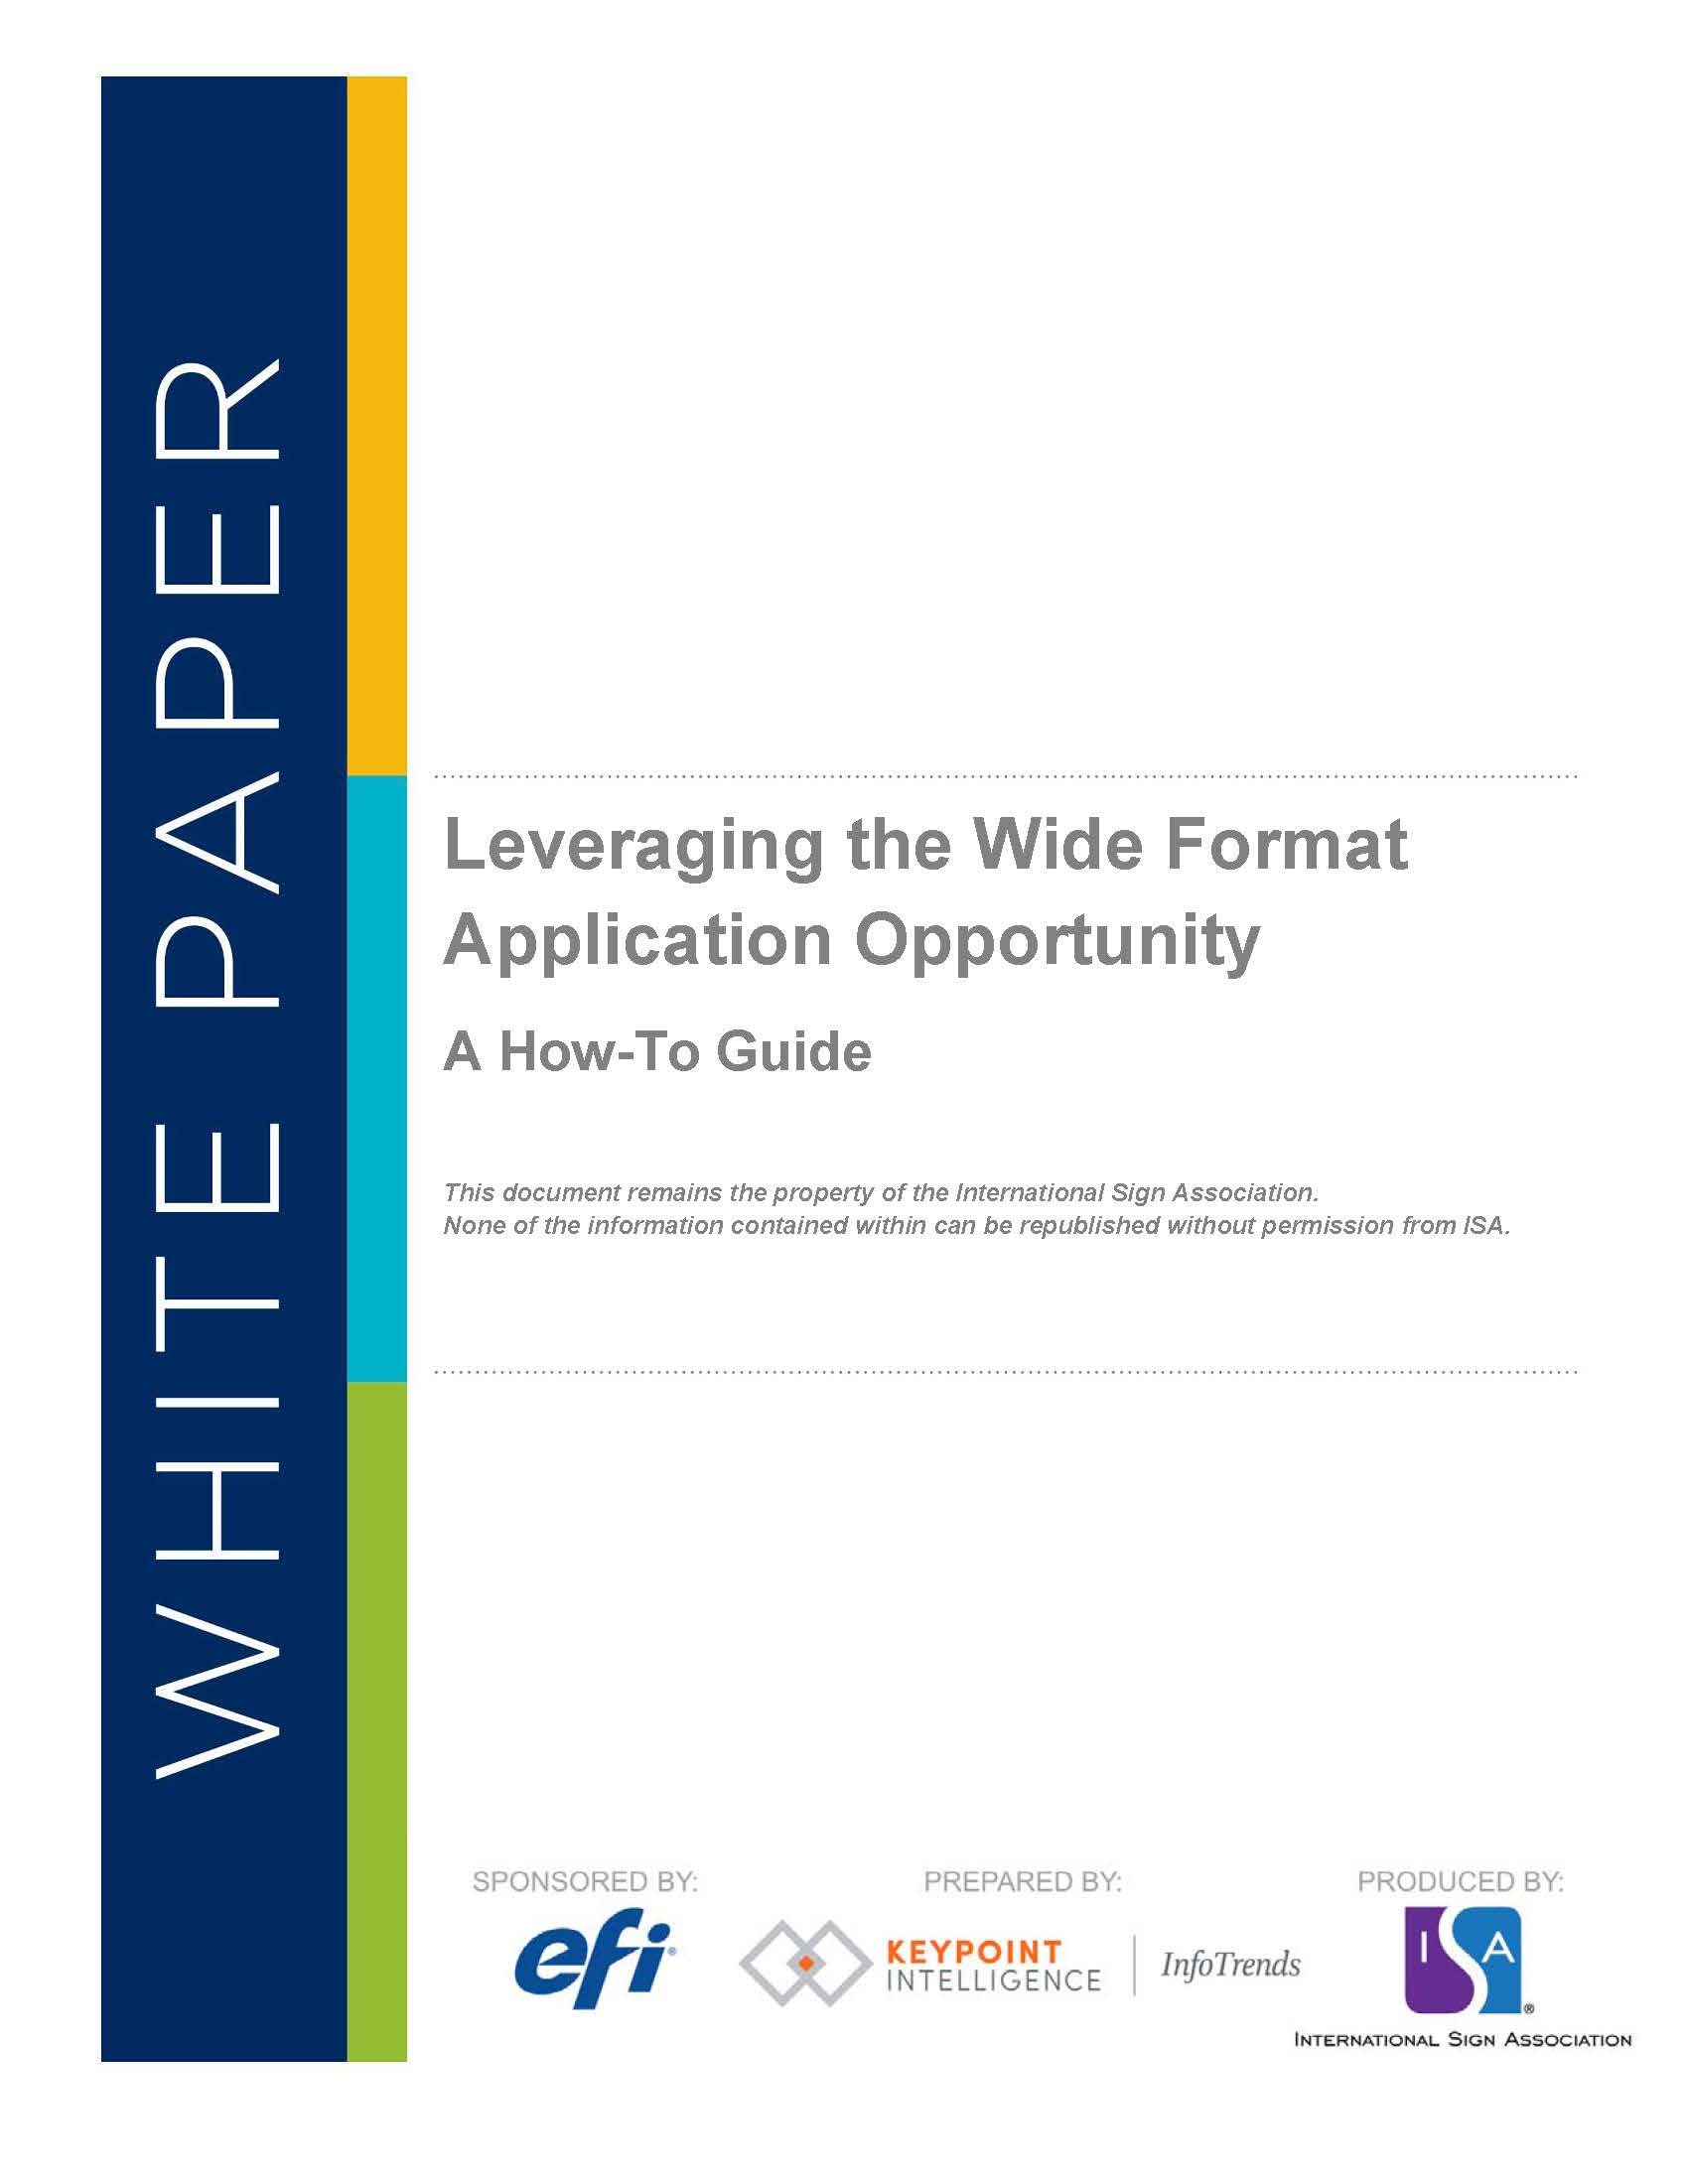 Leveraging the Wide Format Application Opportunity: A How-To Guide